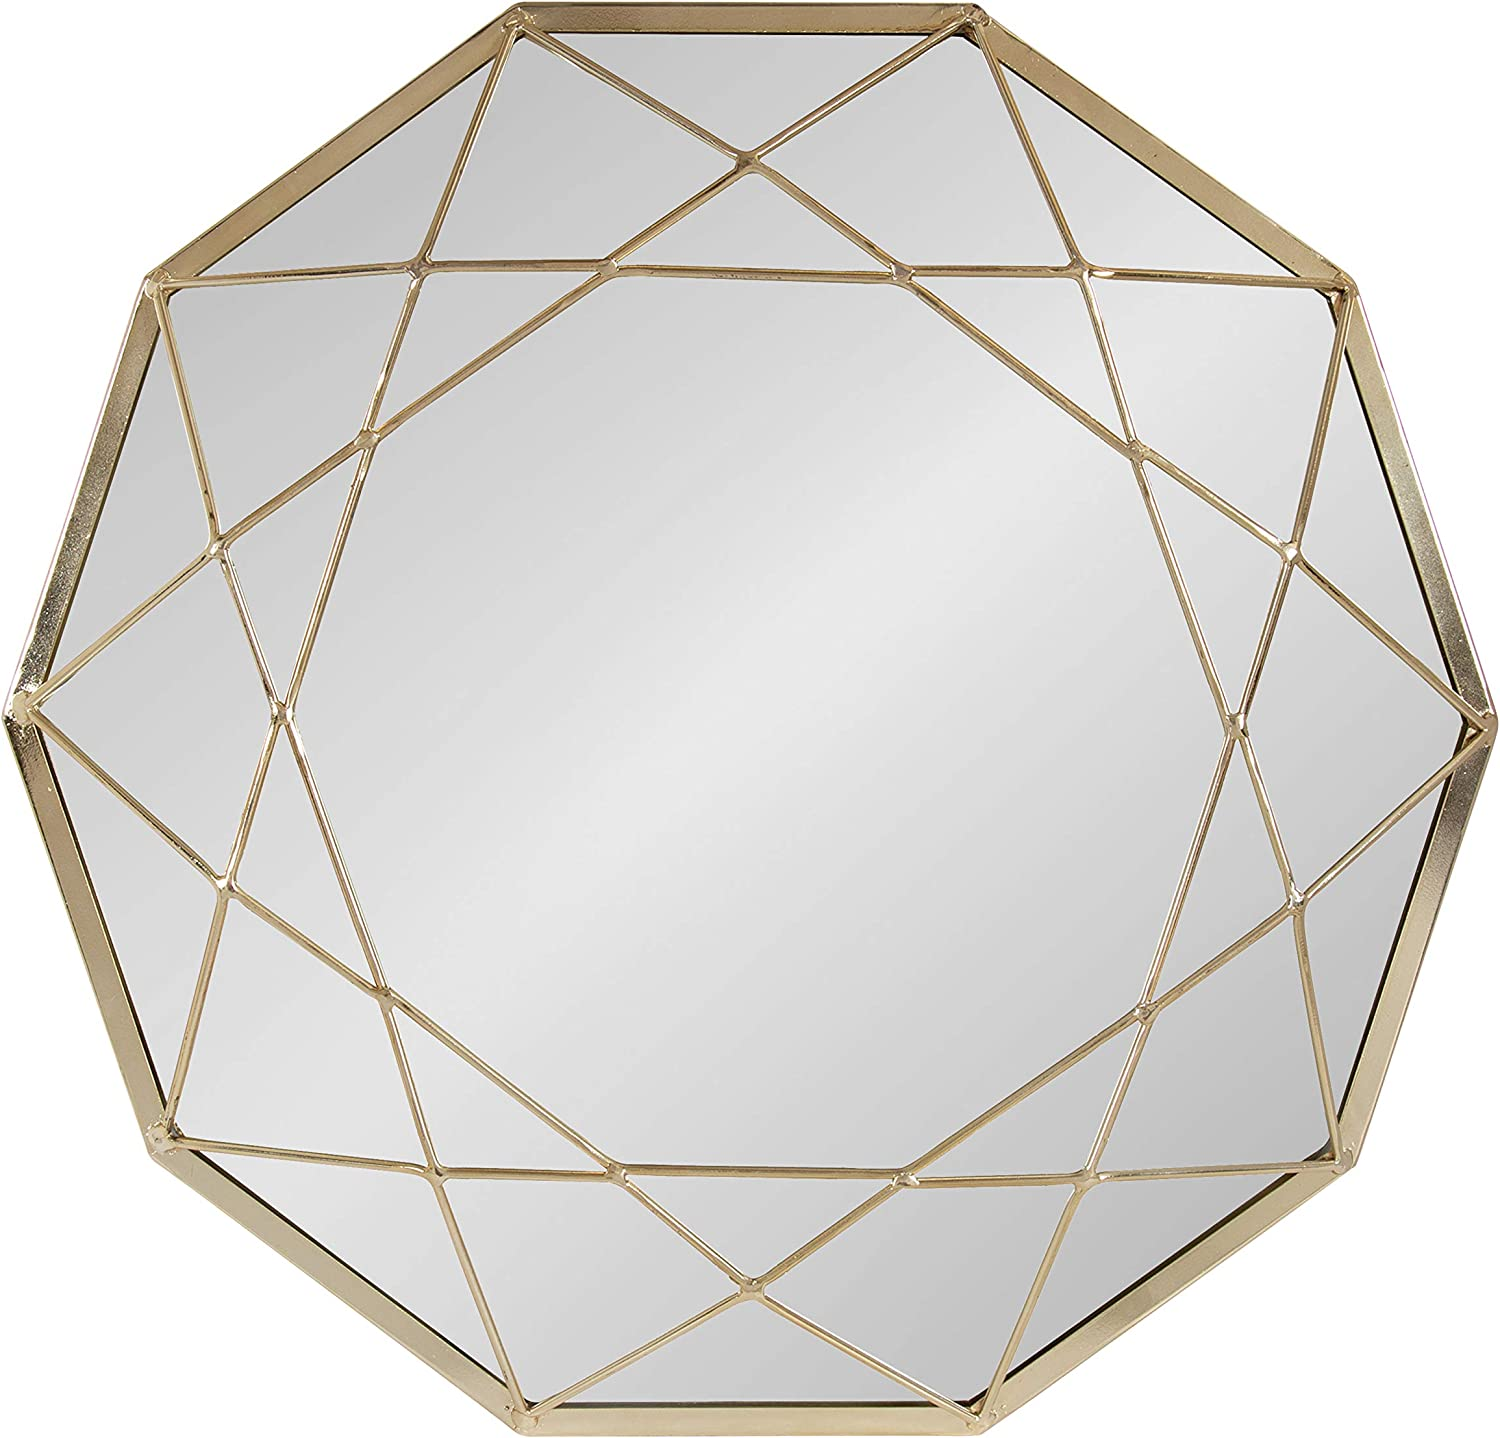 Amazon Com Kate And Laurel Keyleigh Modern Glam Geometric Shaped Metal Accent Wall Mirror Gold Home Kitchen